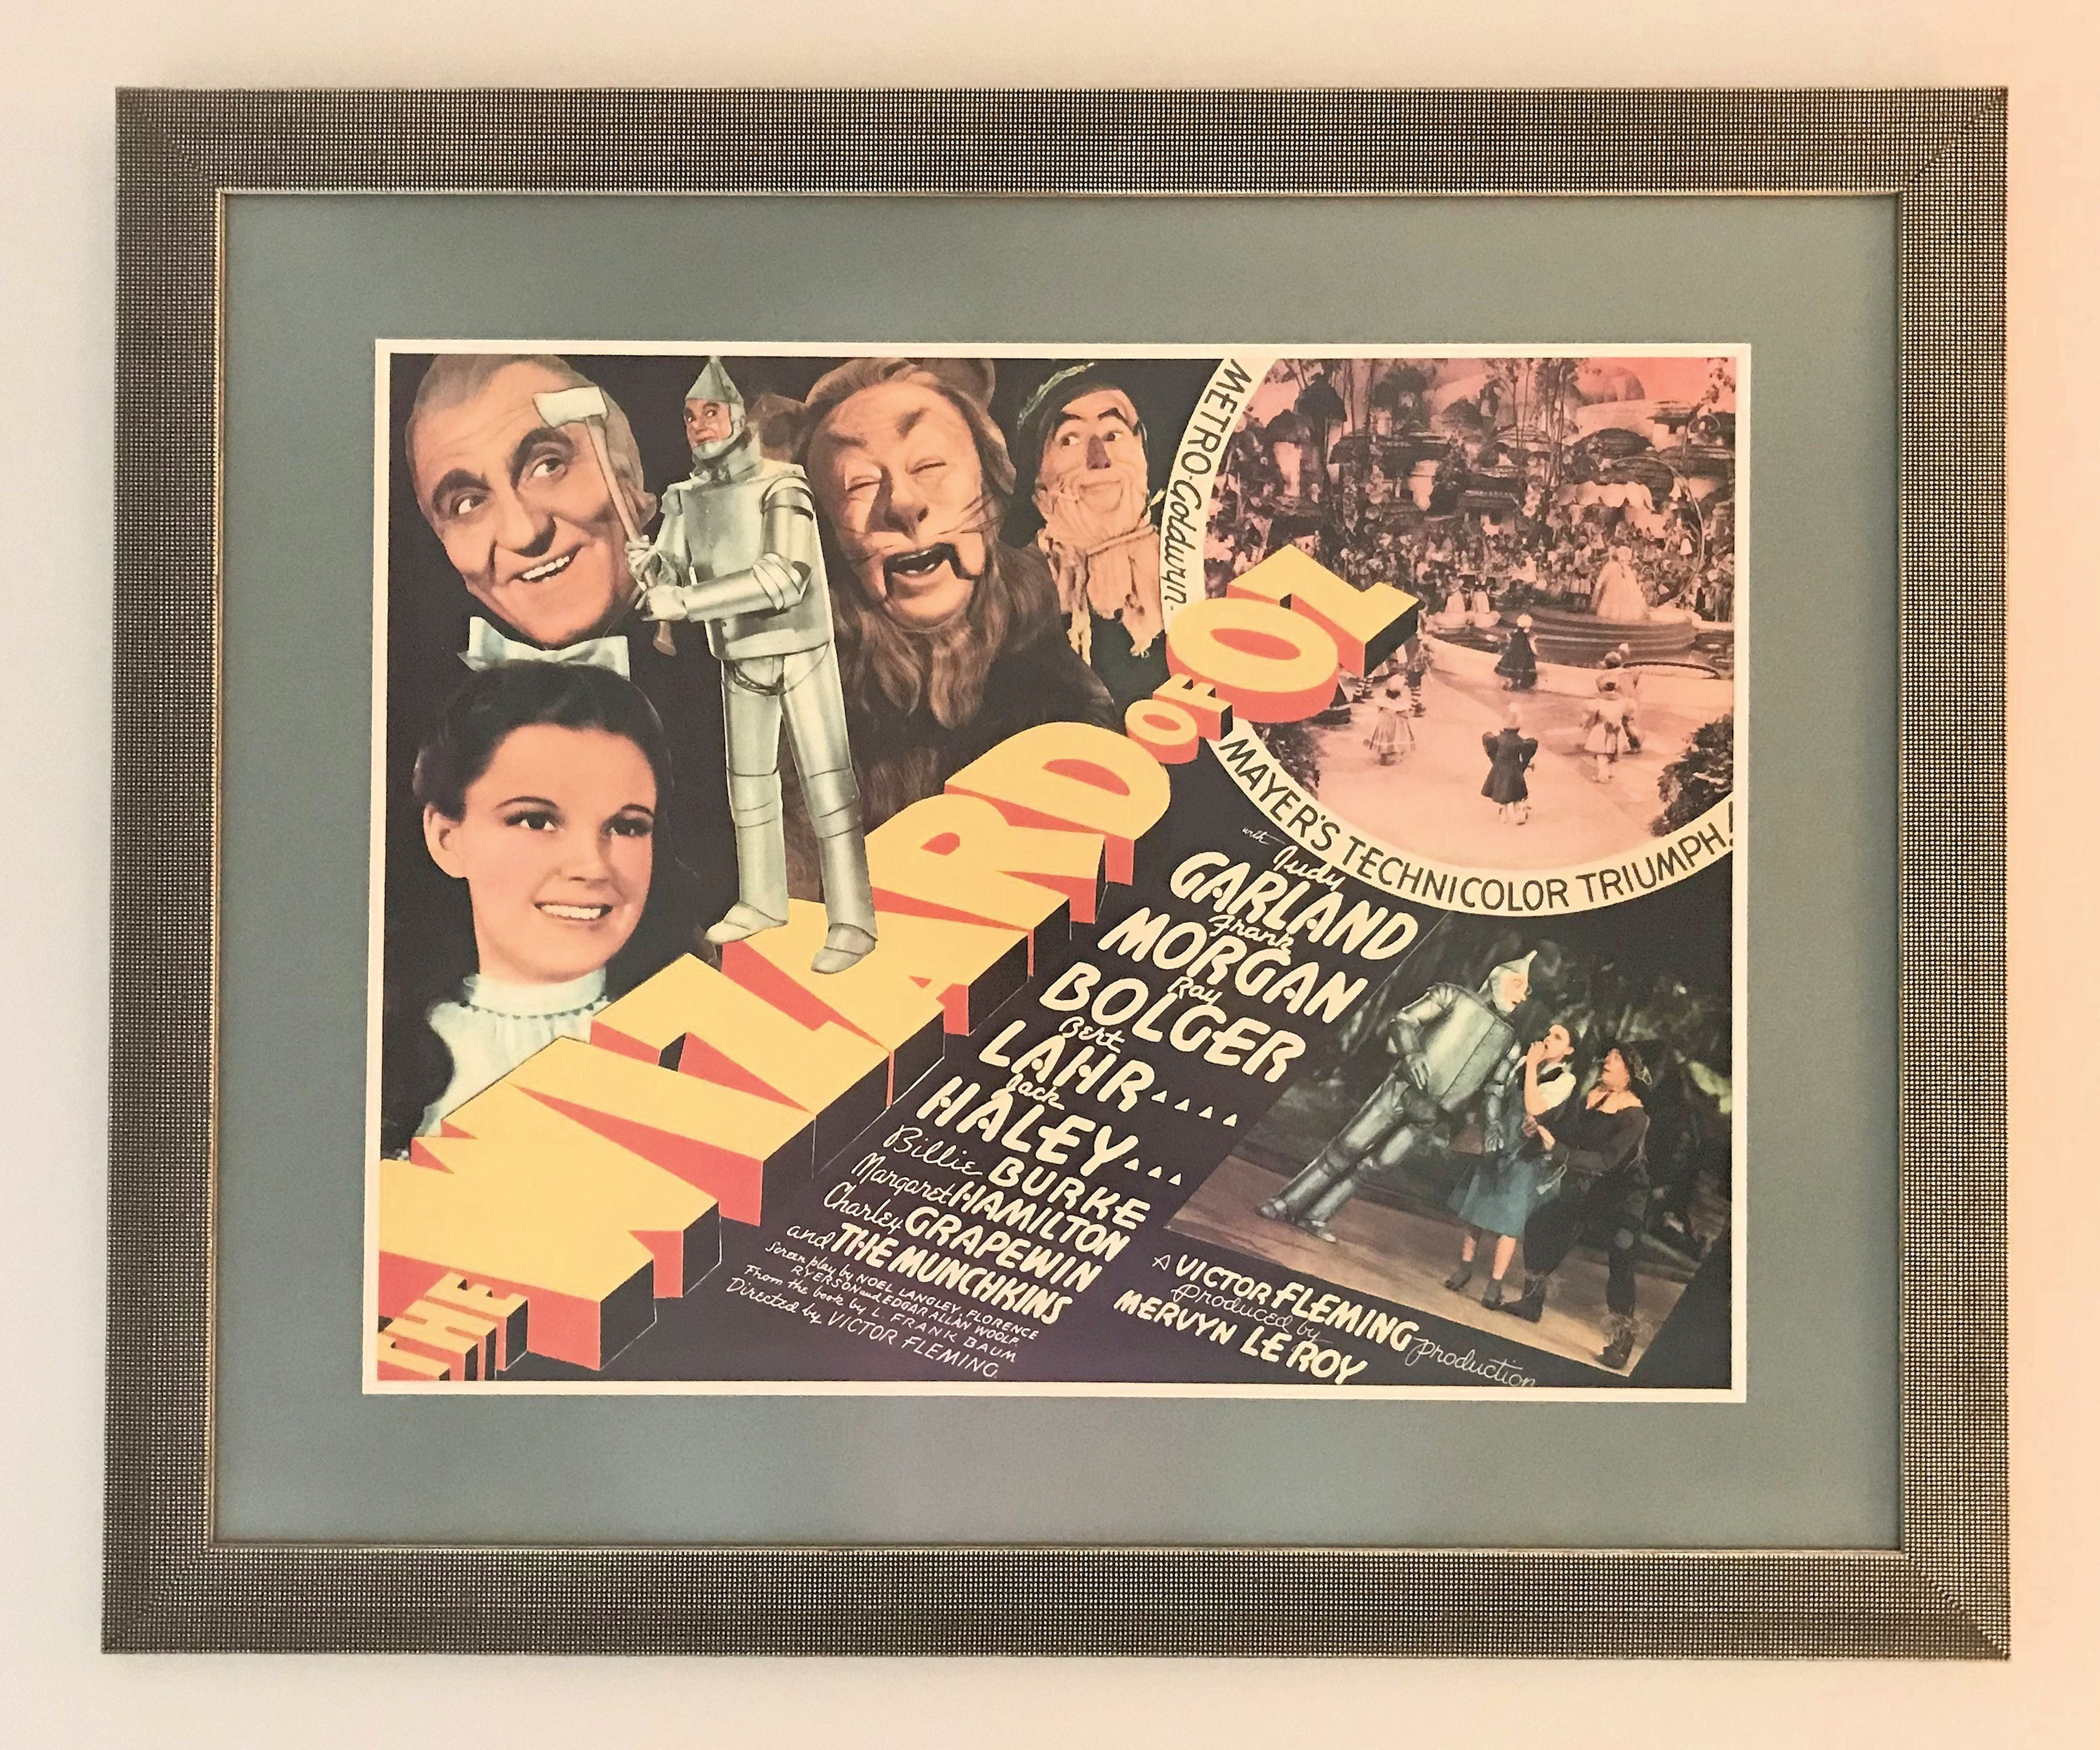 A Wizard of Oz poster from 1967. The art deco style frame makes the piece really special.